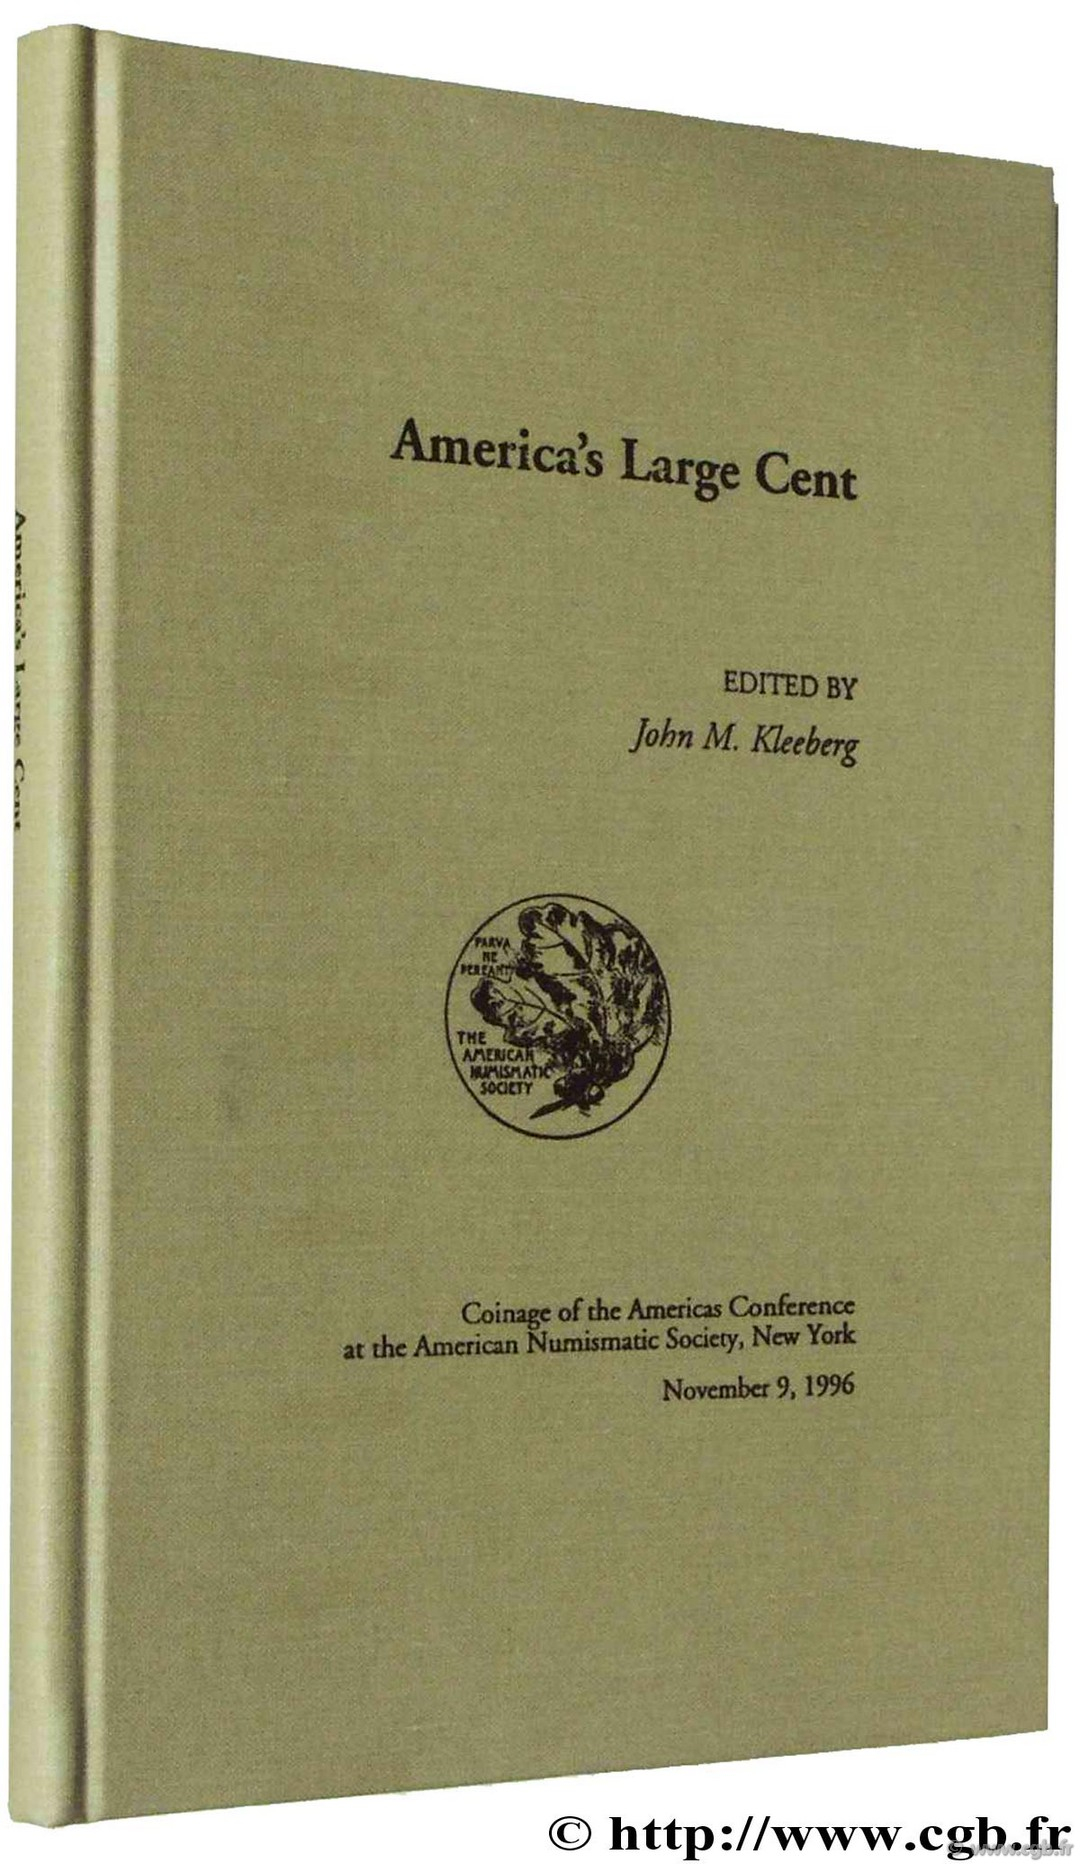 America s large cent, coinage of the americas conférence at the American Numismatic Society, New York November 9,1996